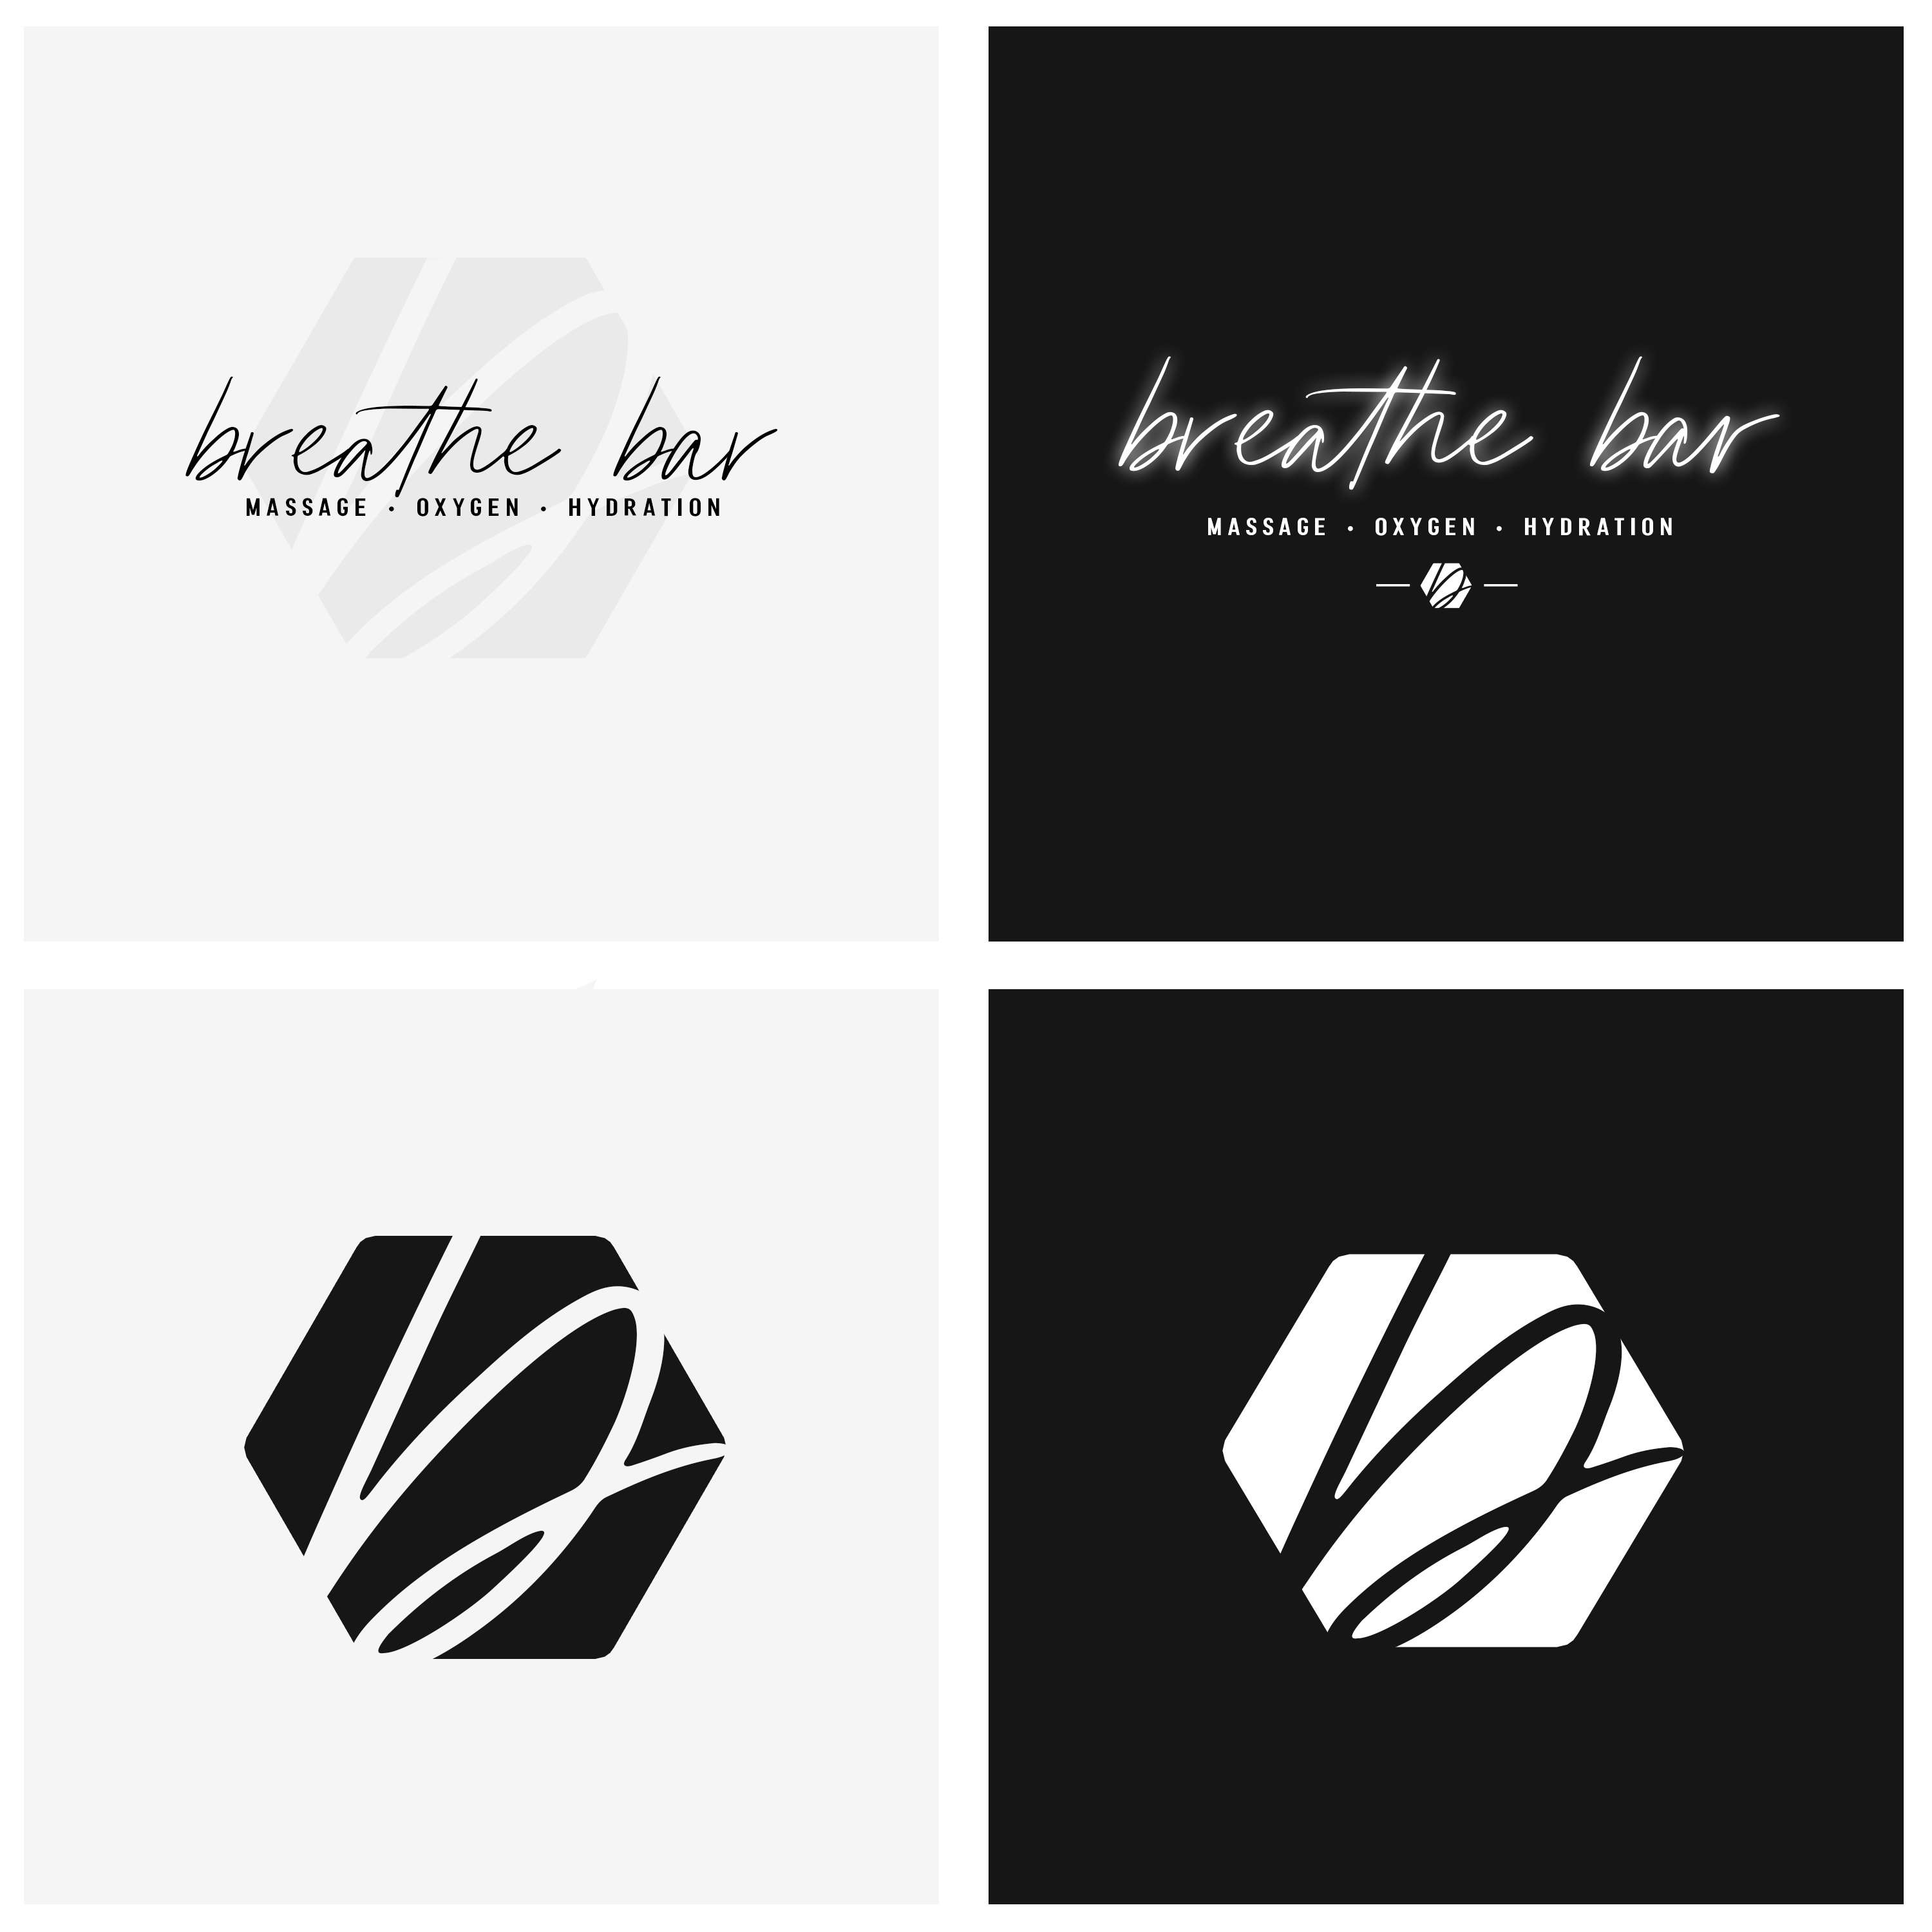 Mabble Media - Creative Agency | Breathe Bar Logo | Brand Guide | Website | Photography | Social Strategy